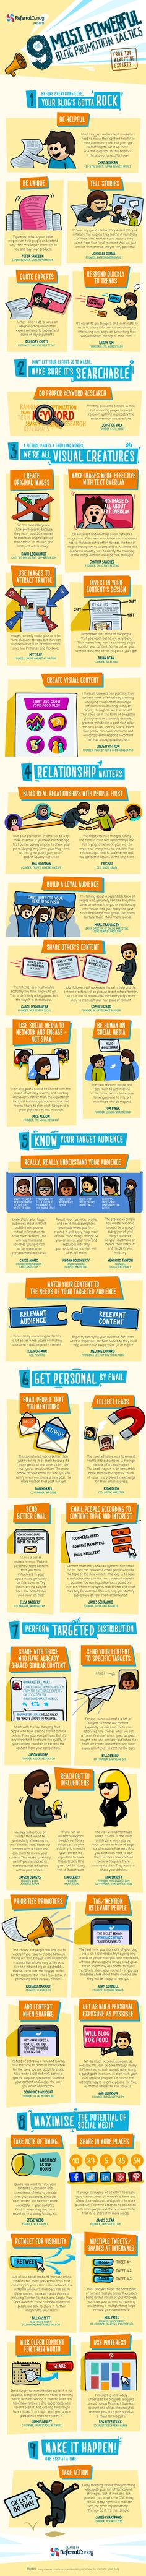 Blog Promotion Tactics #Infographic (Scheduled via TrafficWonker.com) RefugeMarketing.com #Blogging #Marketing